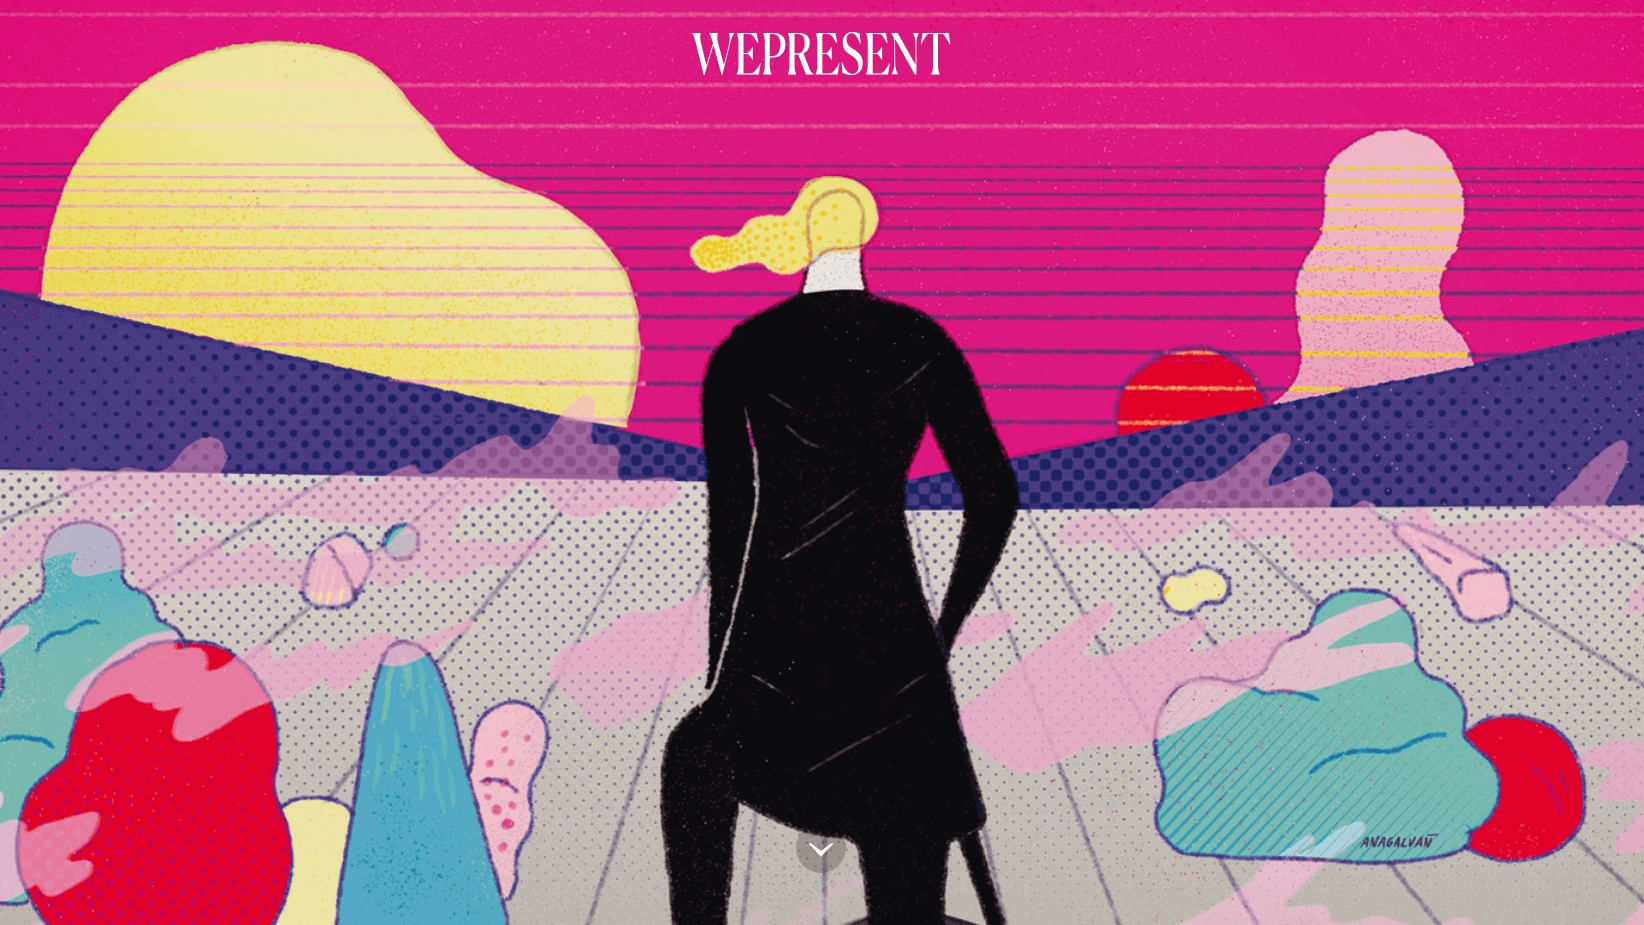 WePresent by WeTransfer, the Dutch cloud-based file downloading platform